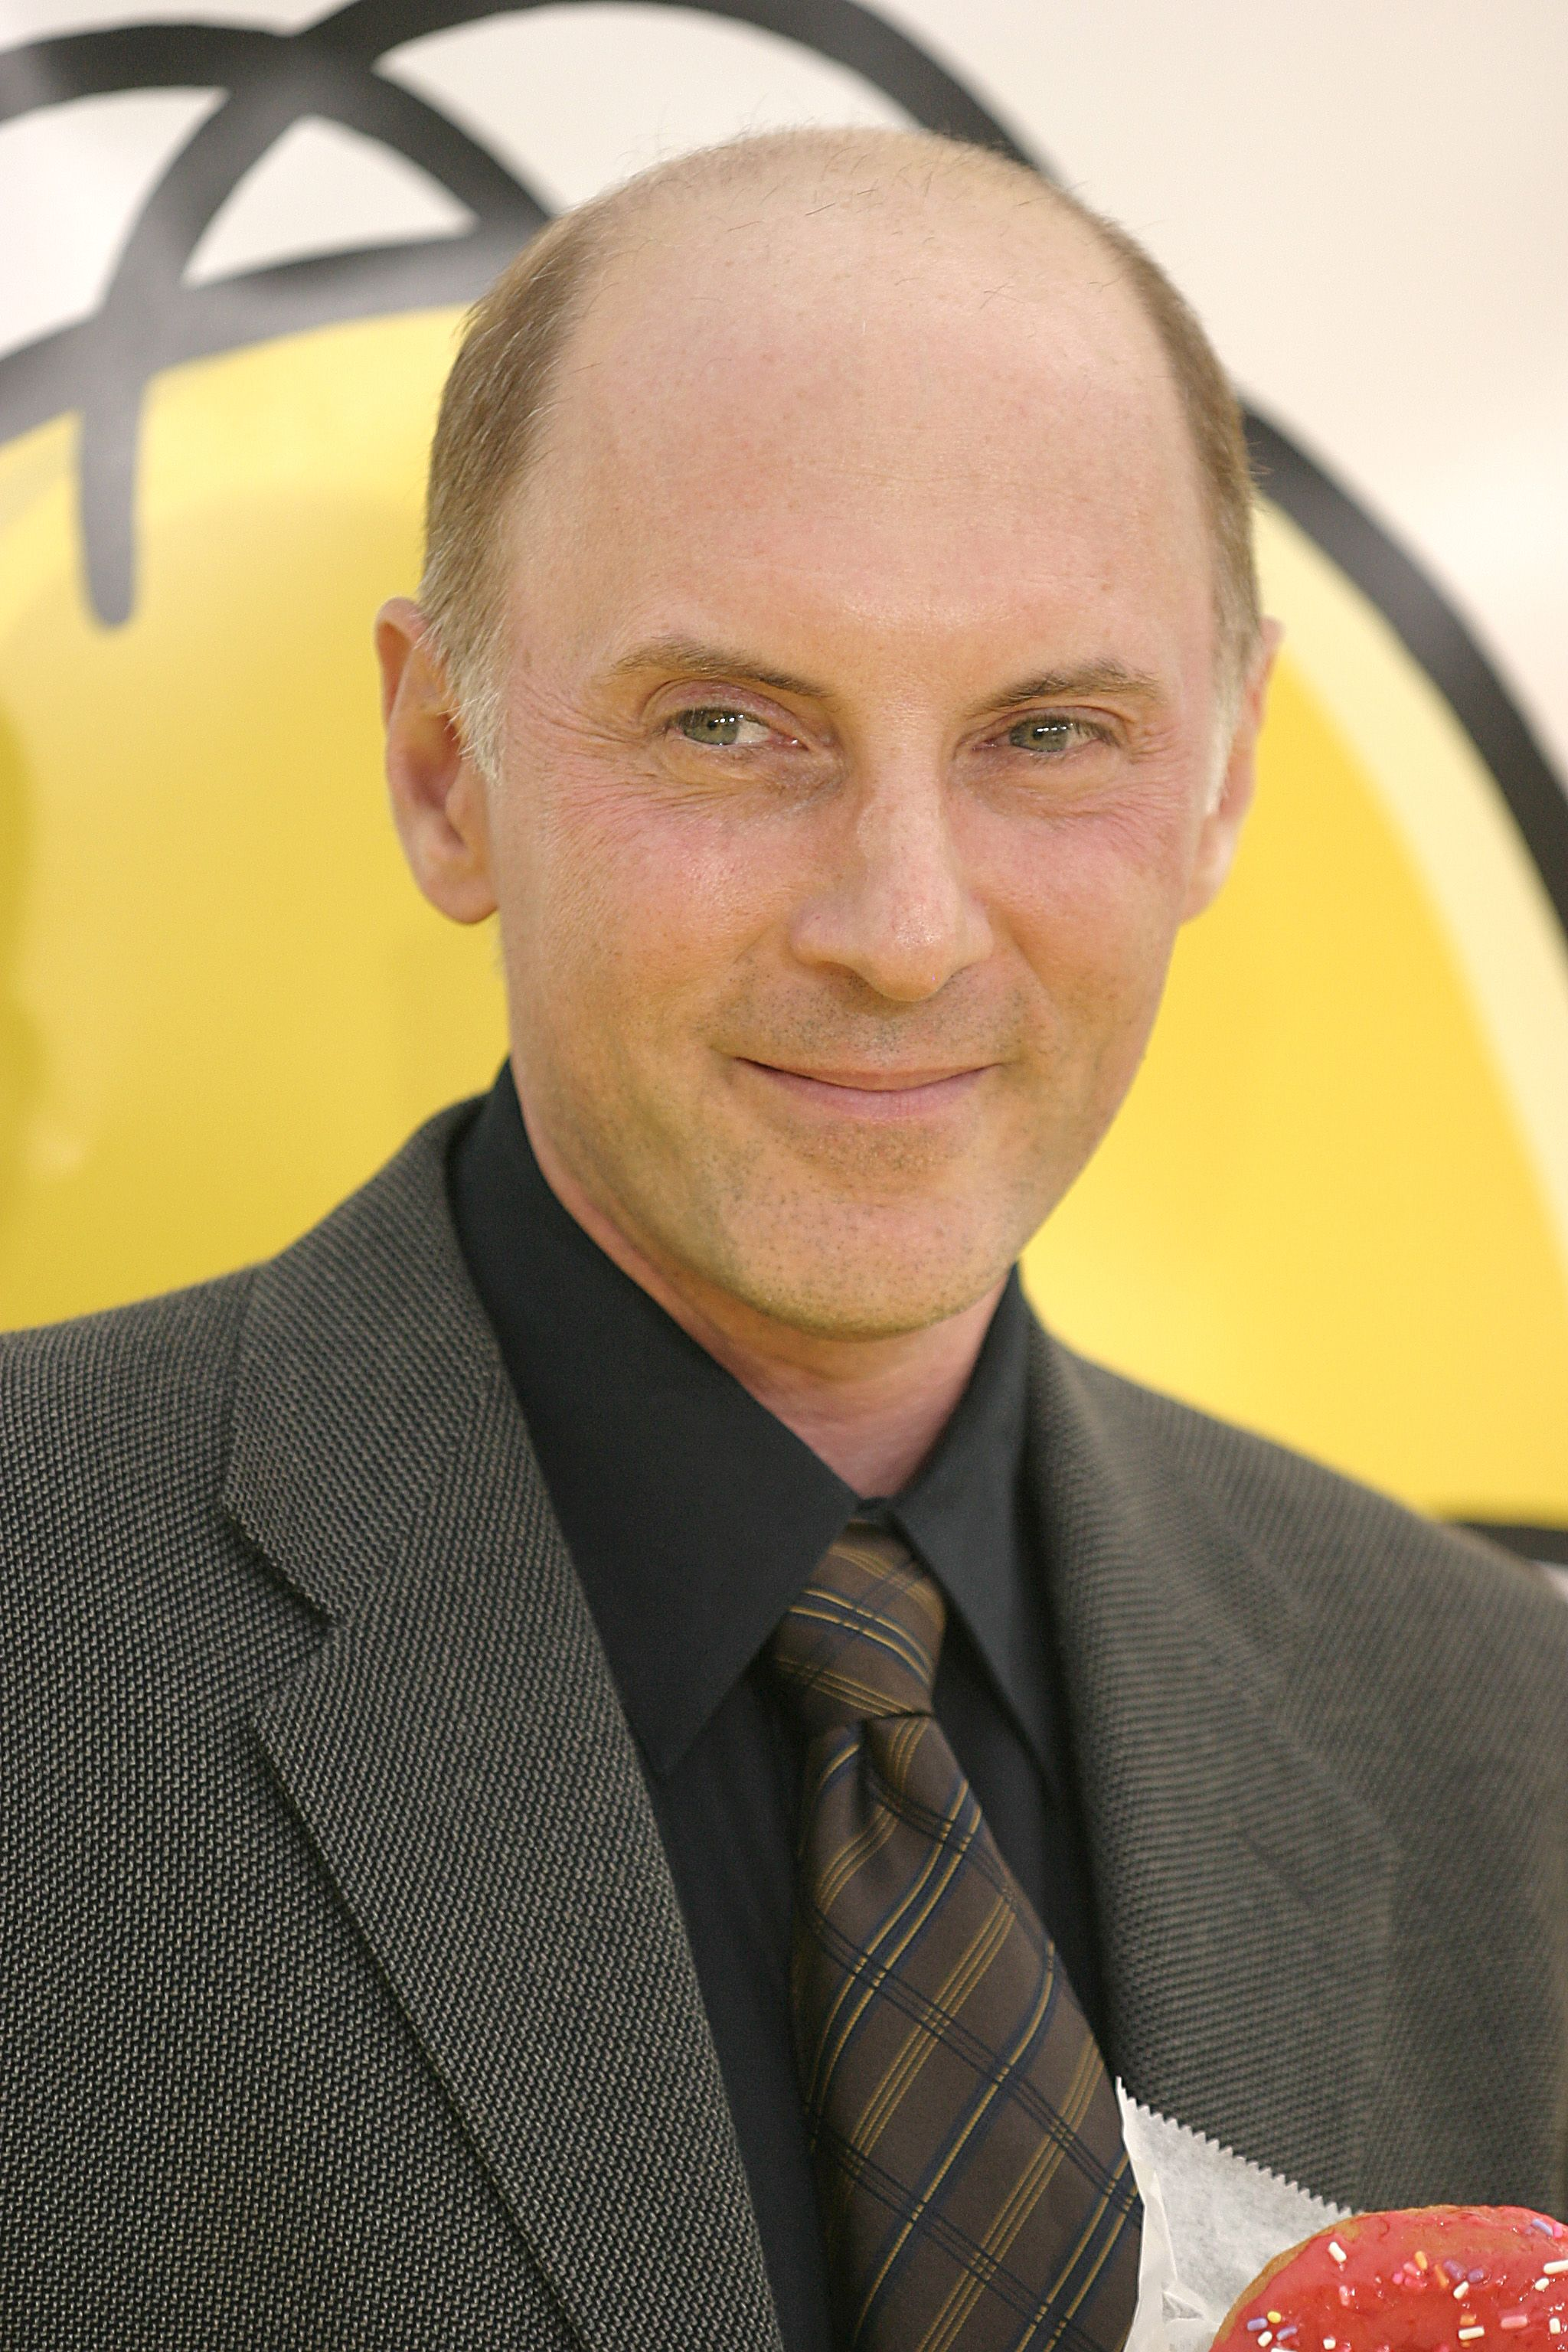 dan castellaneta friendsdan castellaneta homer, dan castellaneta homer simpson, dan castellaneta how i met your mother, dan castellaneta scream, dan castellaneta doh, dan castellaneta singing, dan castellaneta net worth, dan castellaneta michael jackson, dan castellaneta barney, dan castellaneta friends, dan castellaneta planescape torment, dan castellaneta instagram, dan castellaneta 2016, dan castellaneta, dan castellaneta voices, dan castellaneta imdb, dan castellaneta genie, dan castellaneta interview, dan castellaneta dead, dan castellaneta parks and rec